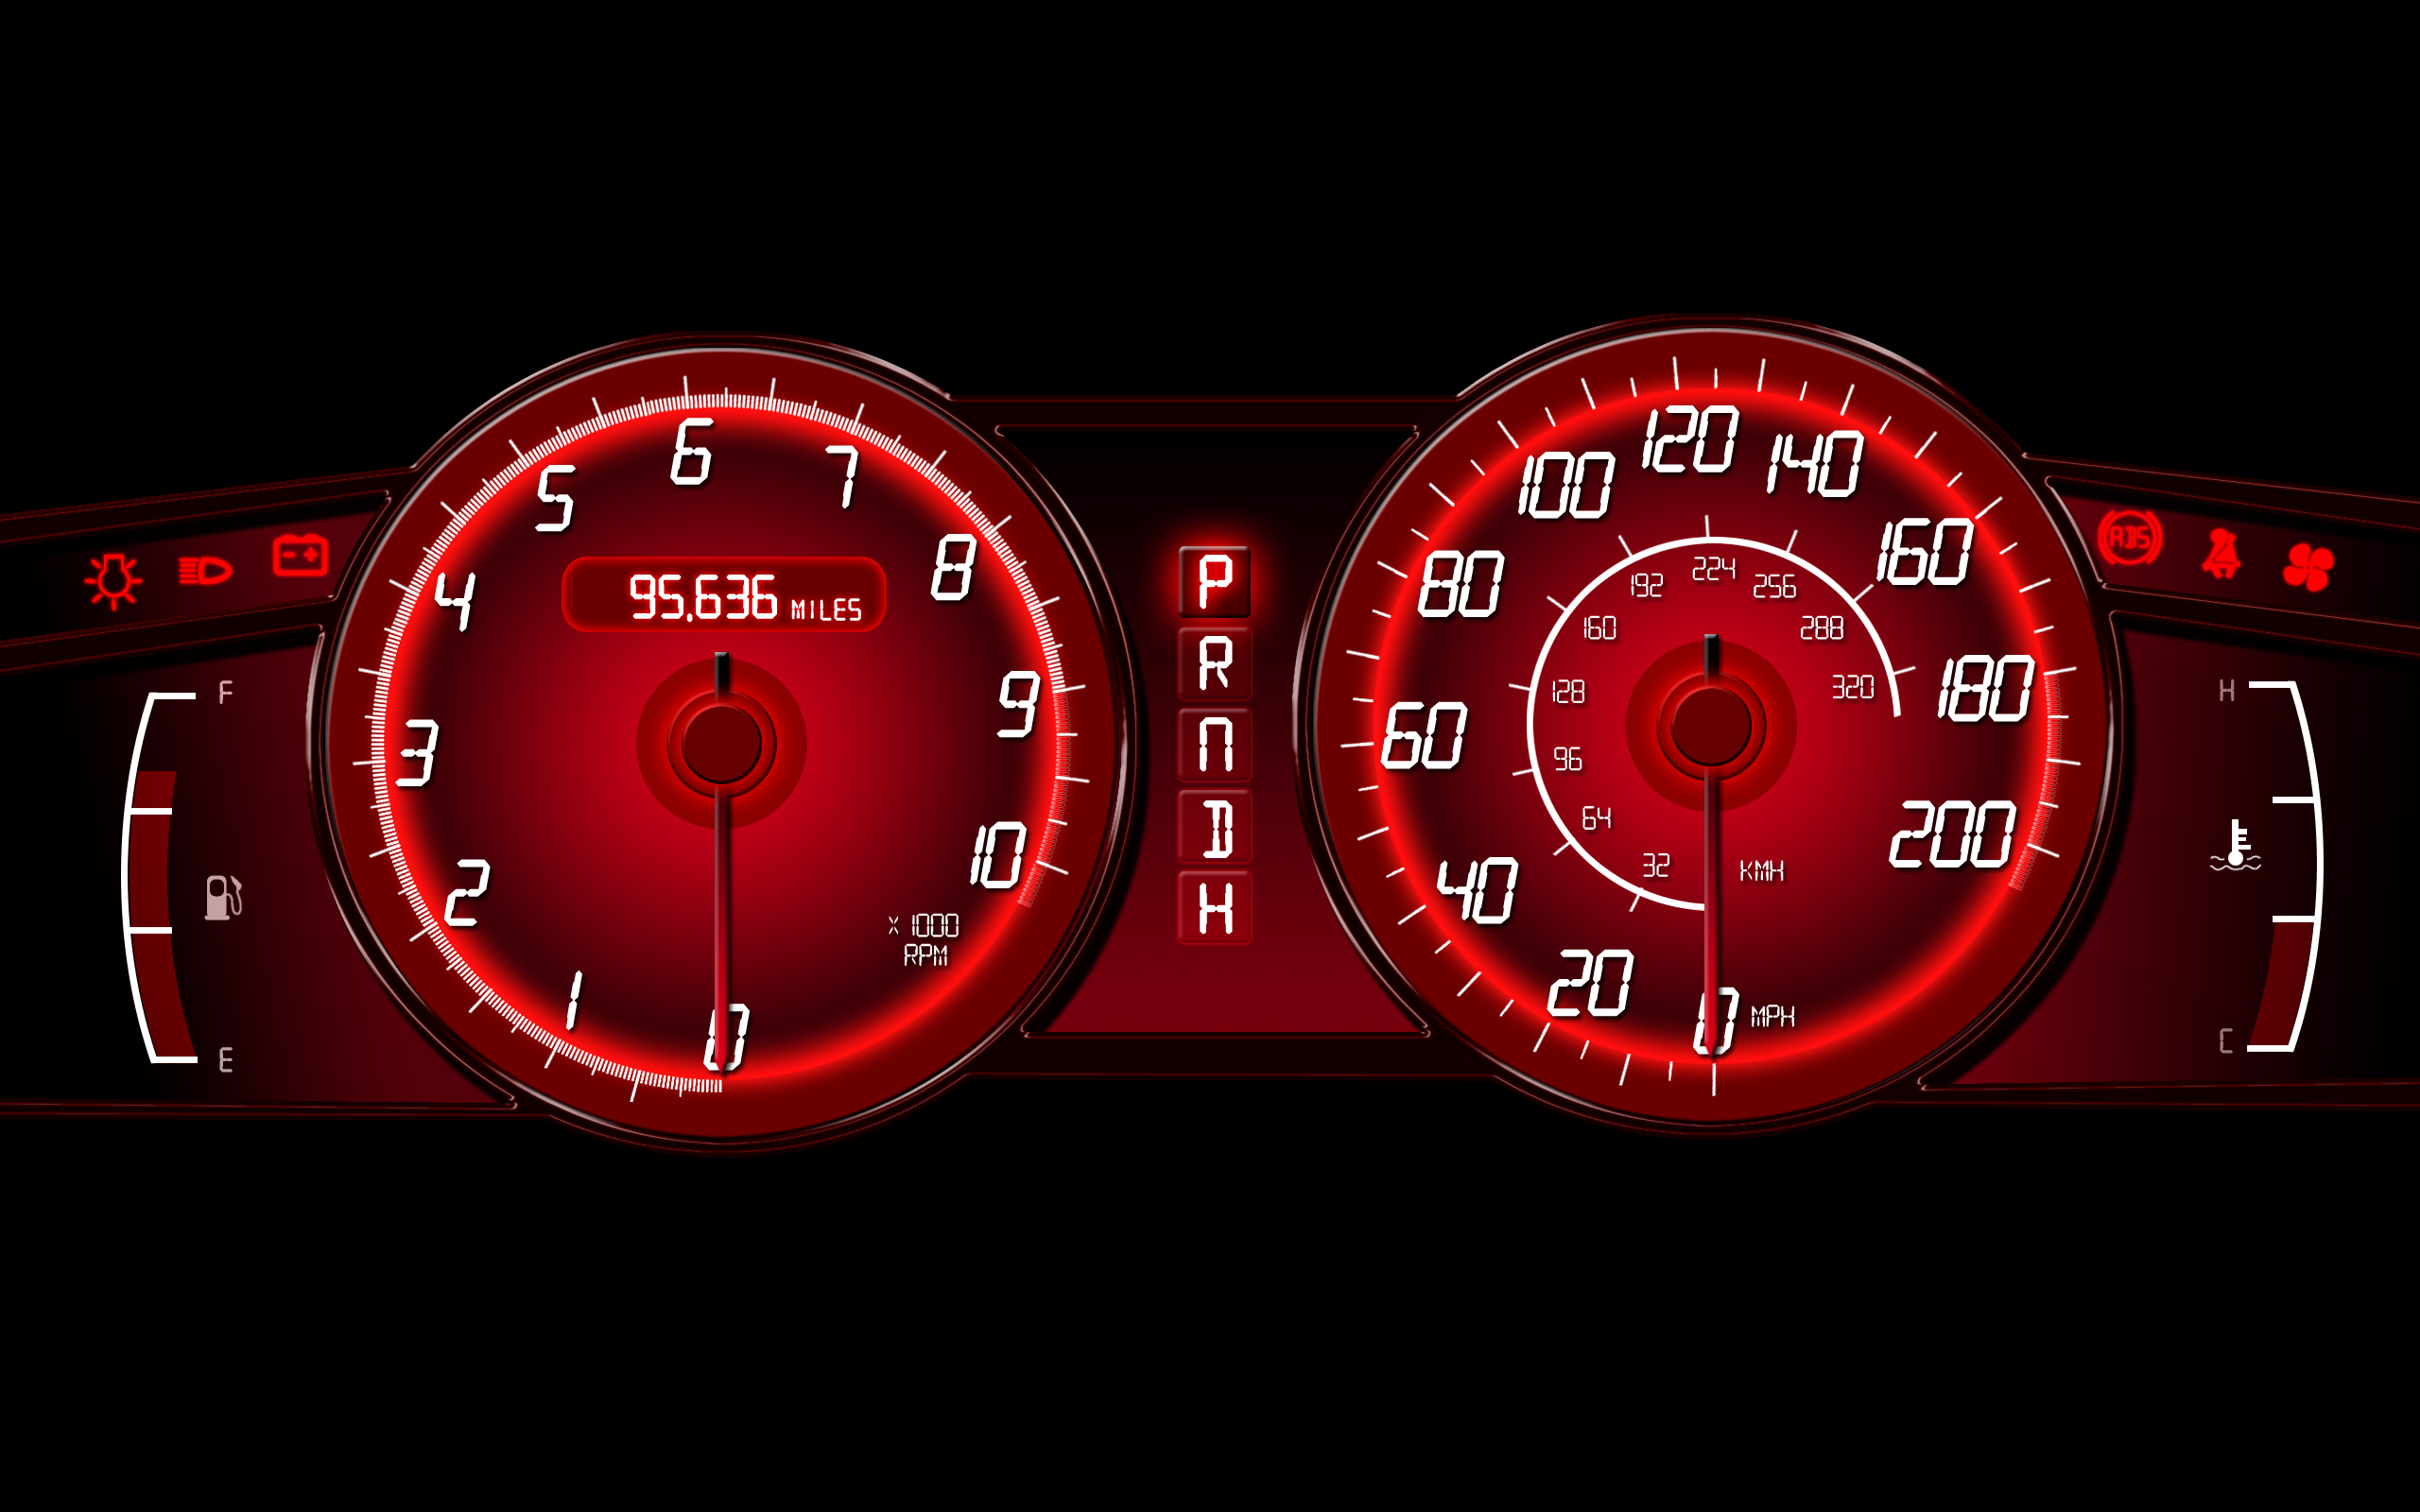 Speedometer Live Wallpaper D Android Apps on Google Play